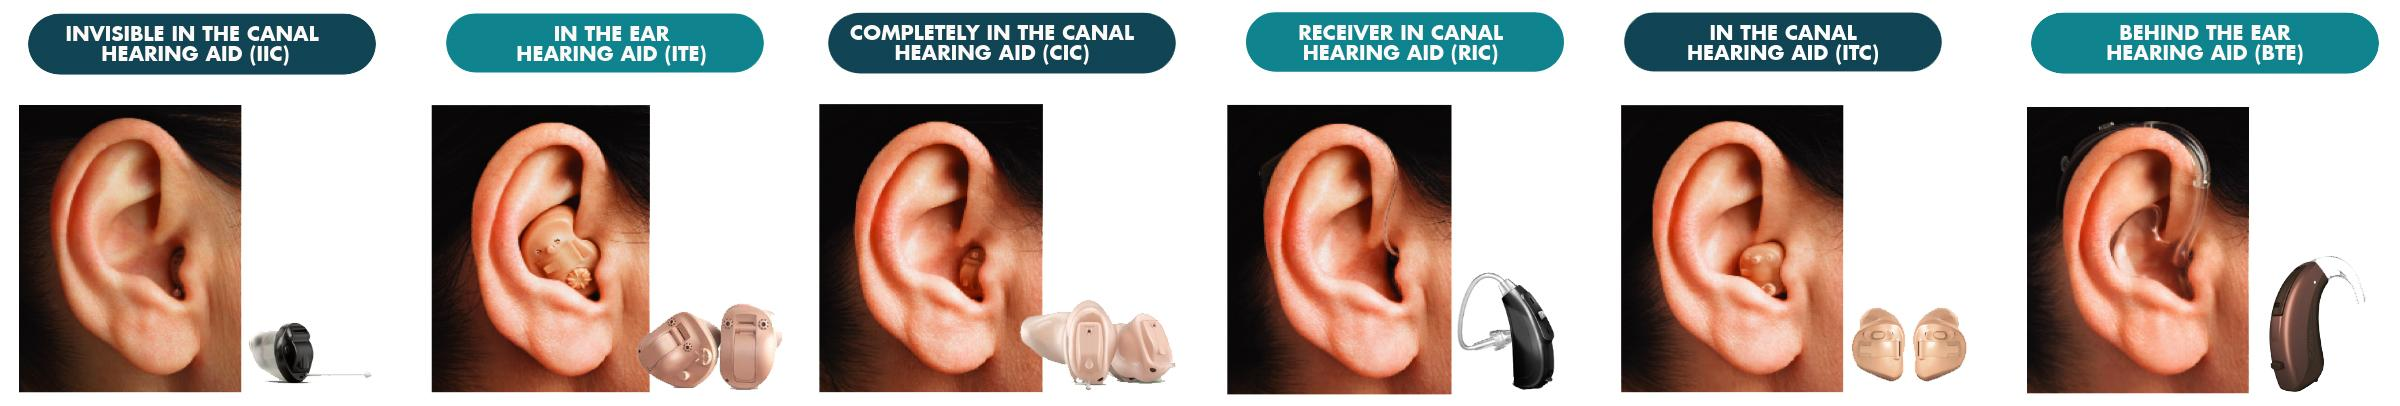 Style And Shape Of Hearing Aids